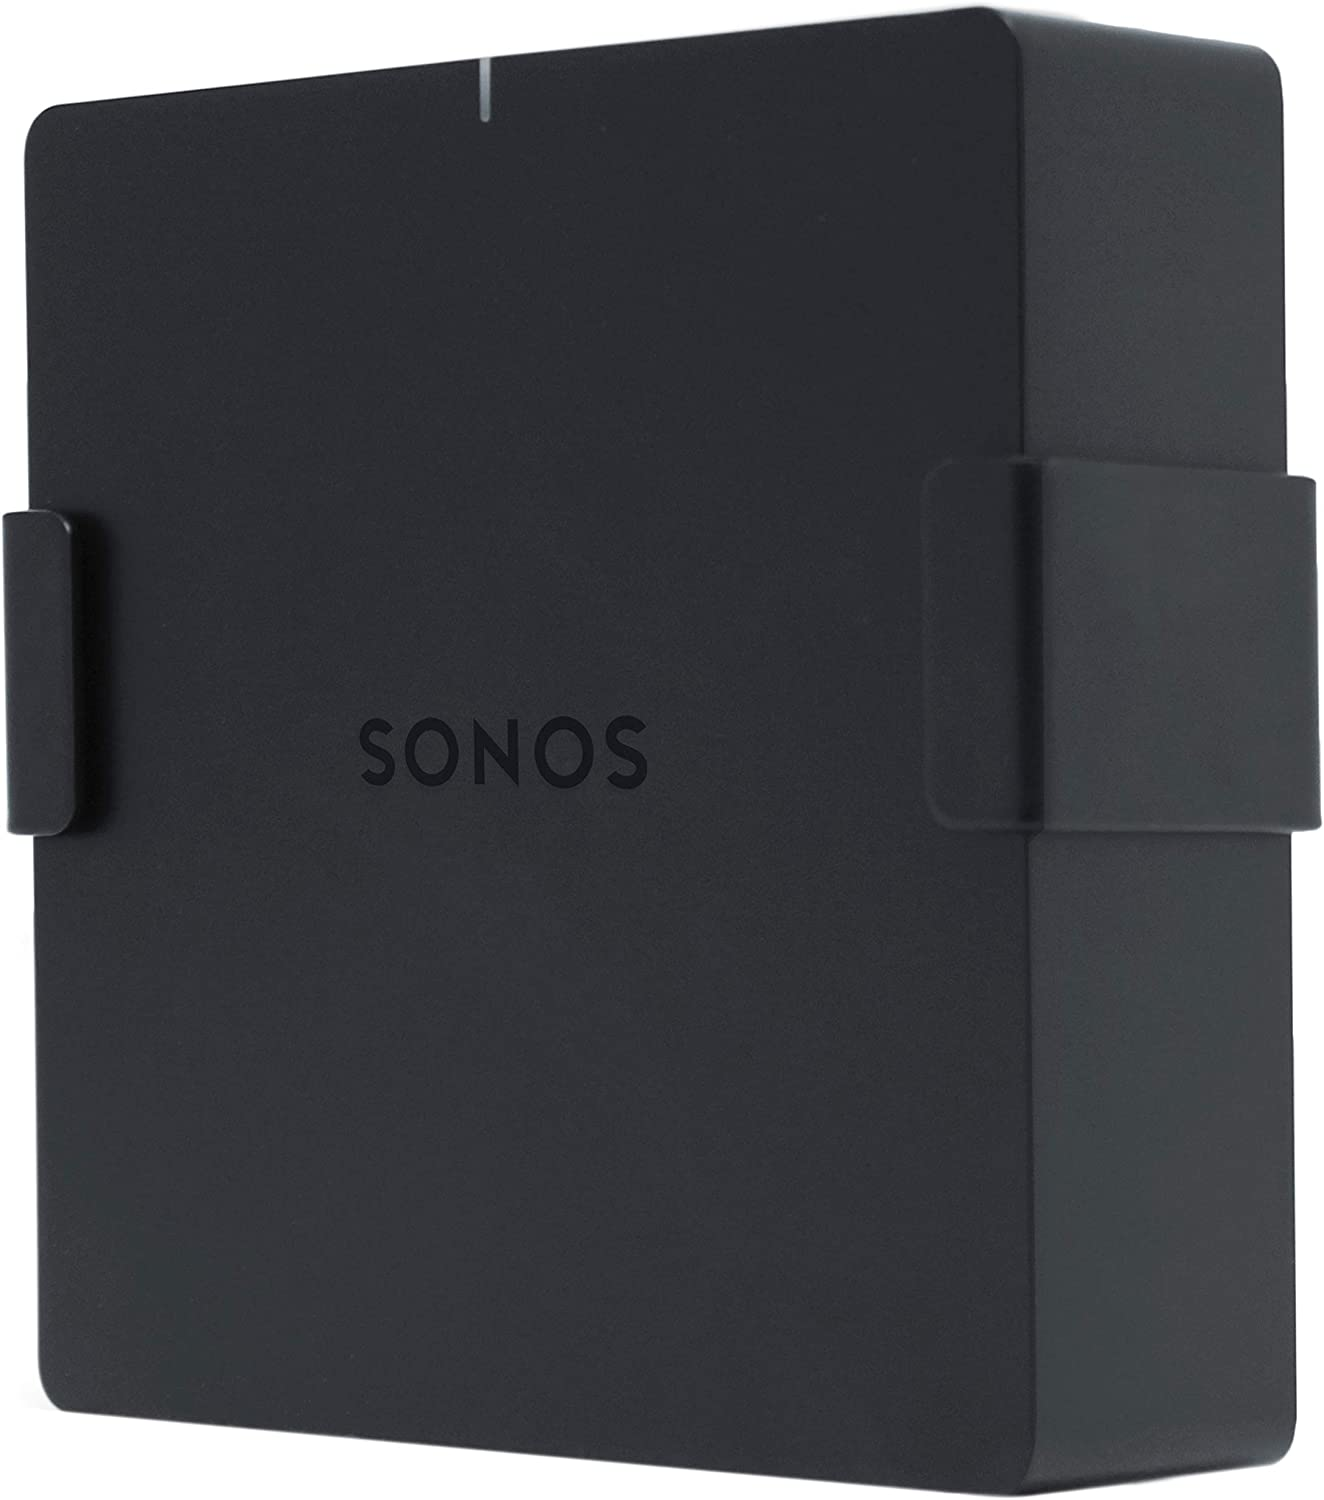 HumanCentric Wall Mount Compatible with Sonos Port | Mounting Bracket Includes All Needed Hardware to Install on Drywall